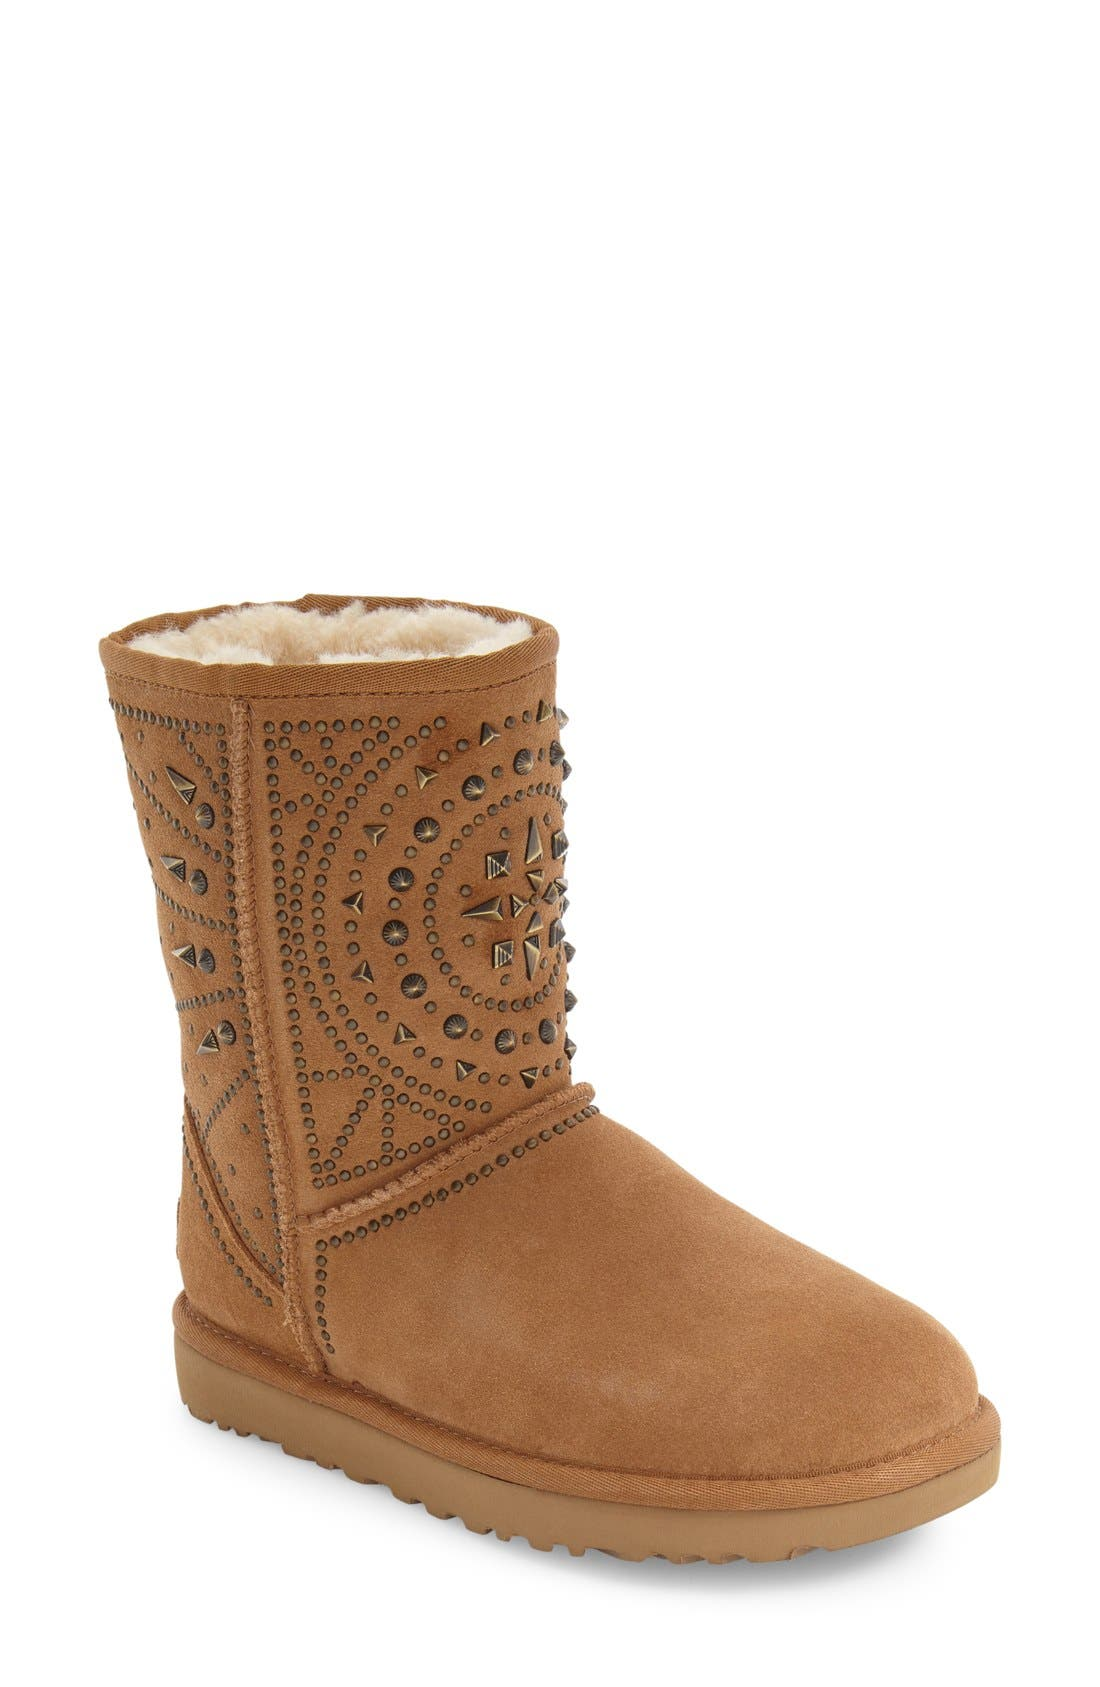 Alternate Image 1 Selected - UGG® Fiore Deco Studs Boot (Women)